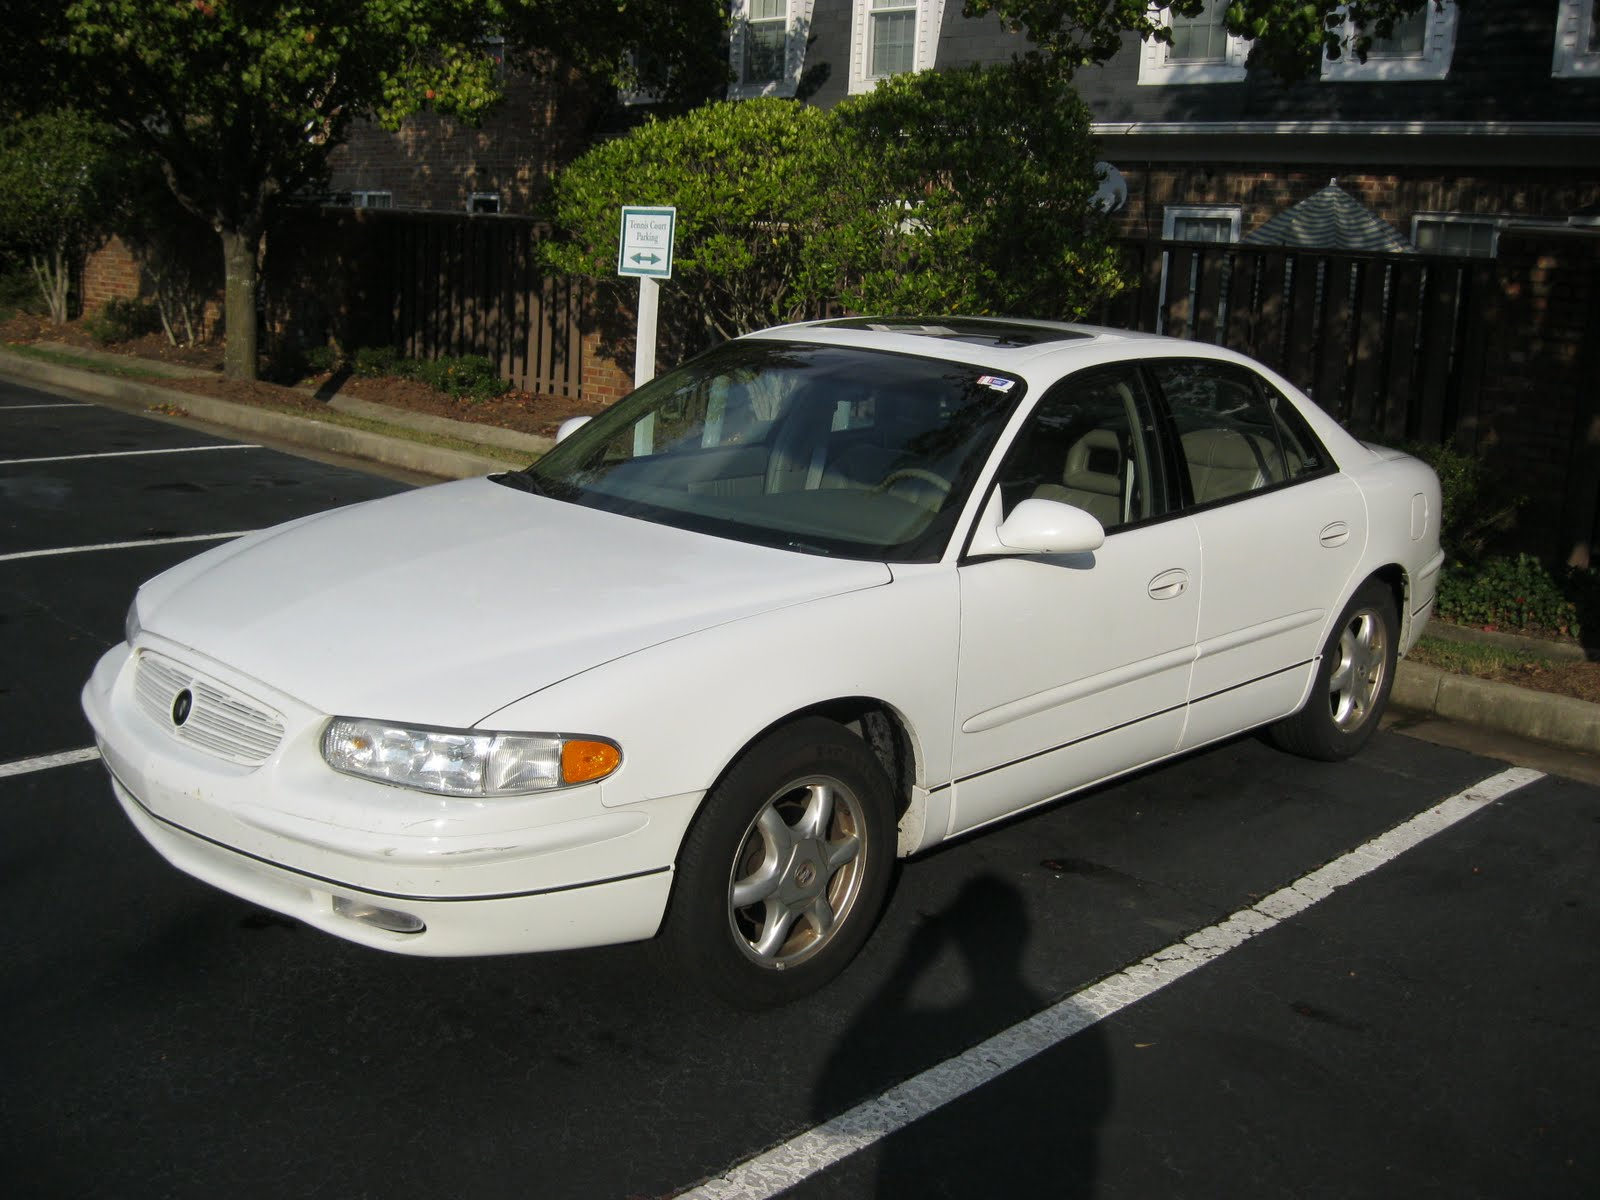 2000 buick regal repair problems cost and for 2002 buick lesabre window problems